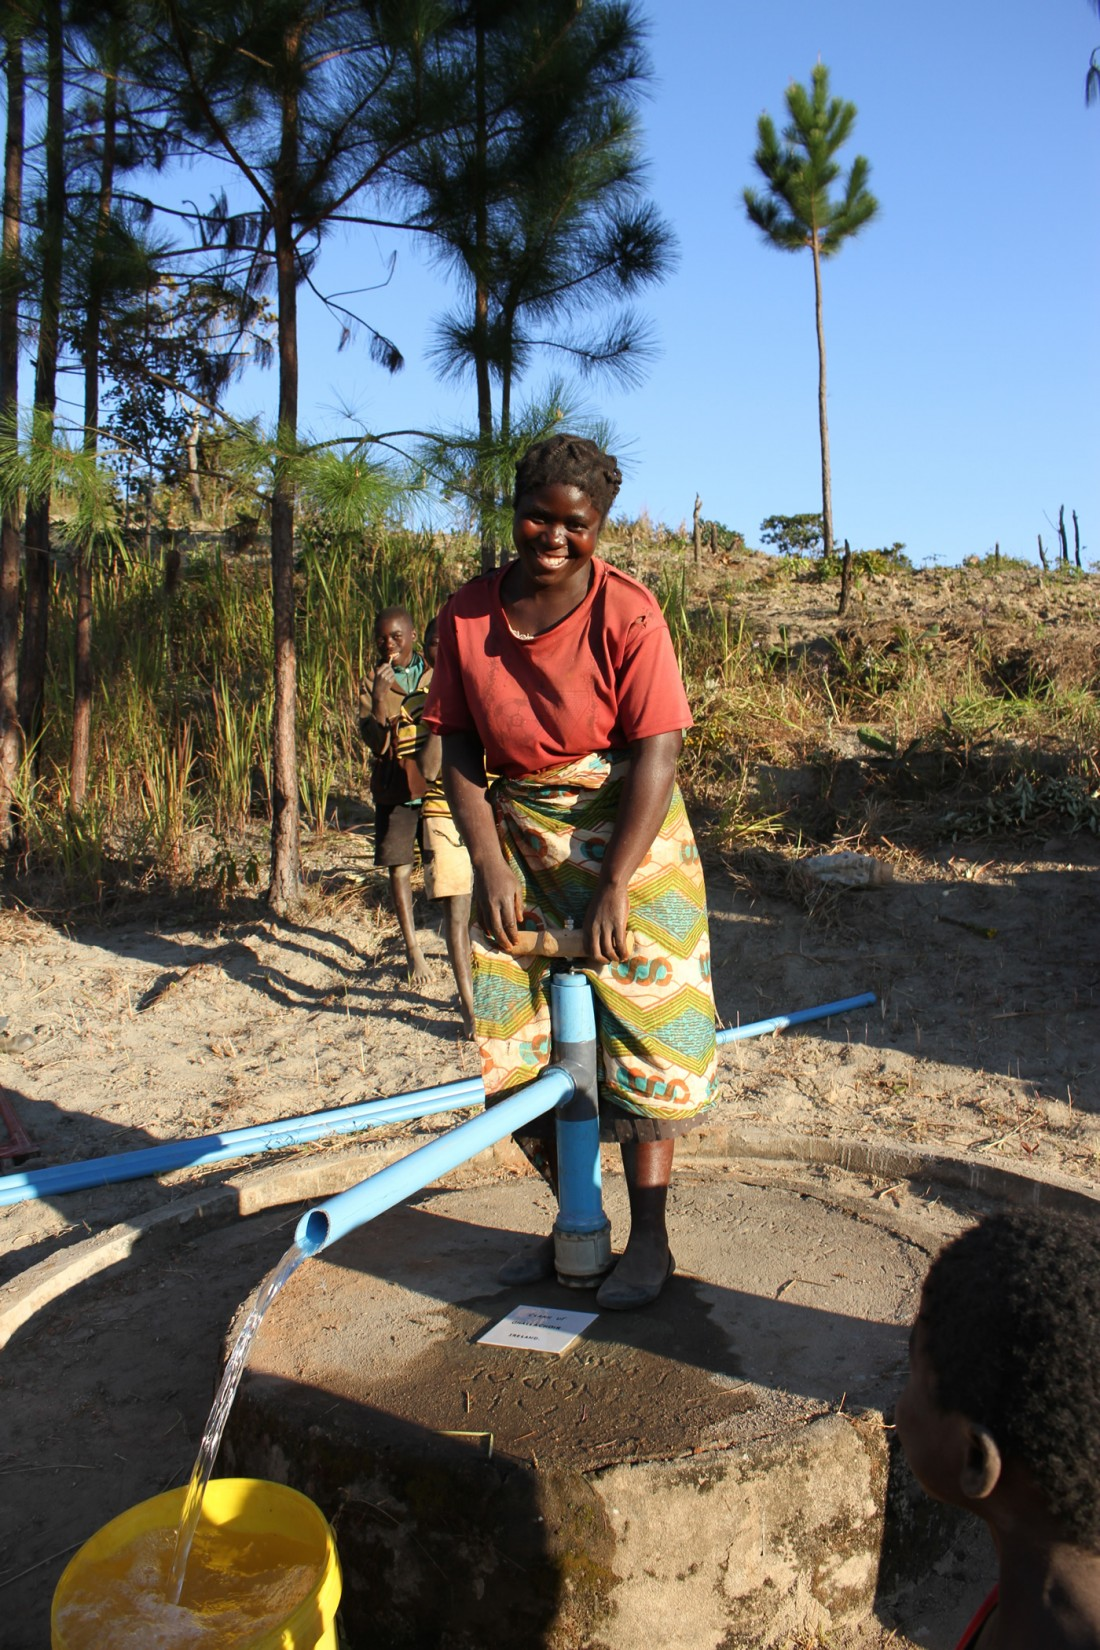 woman using the pump